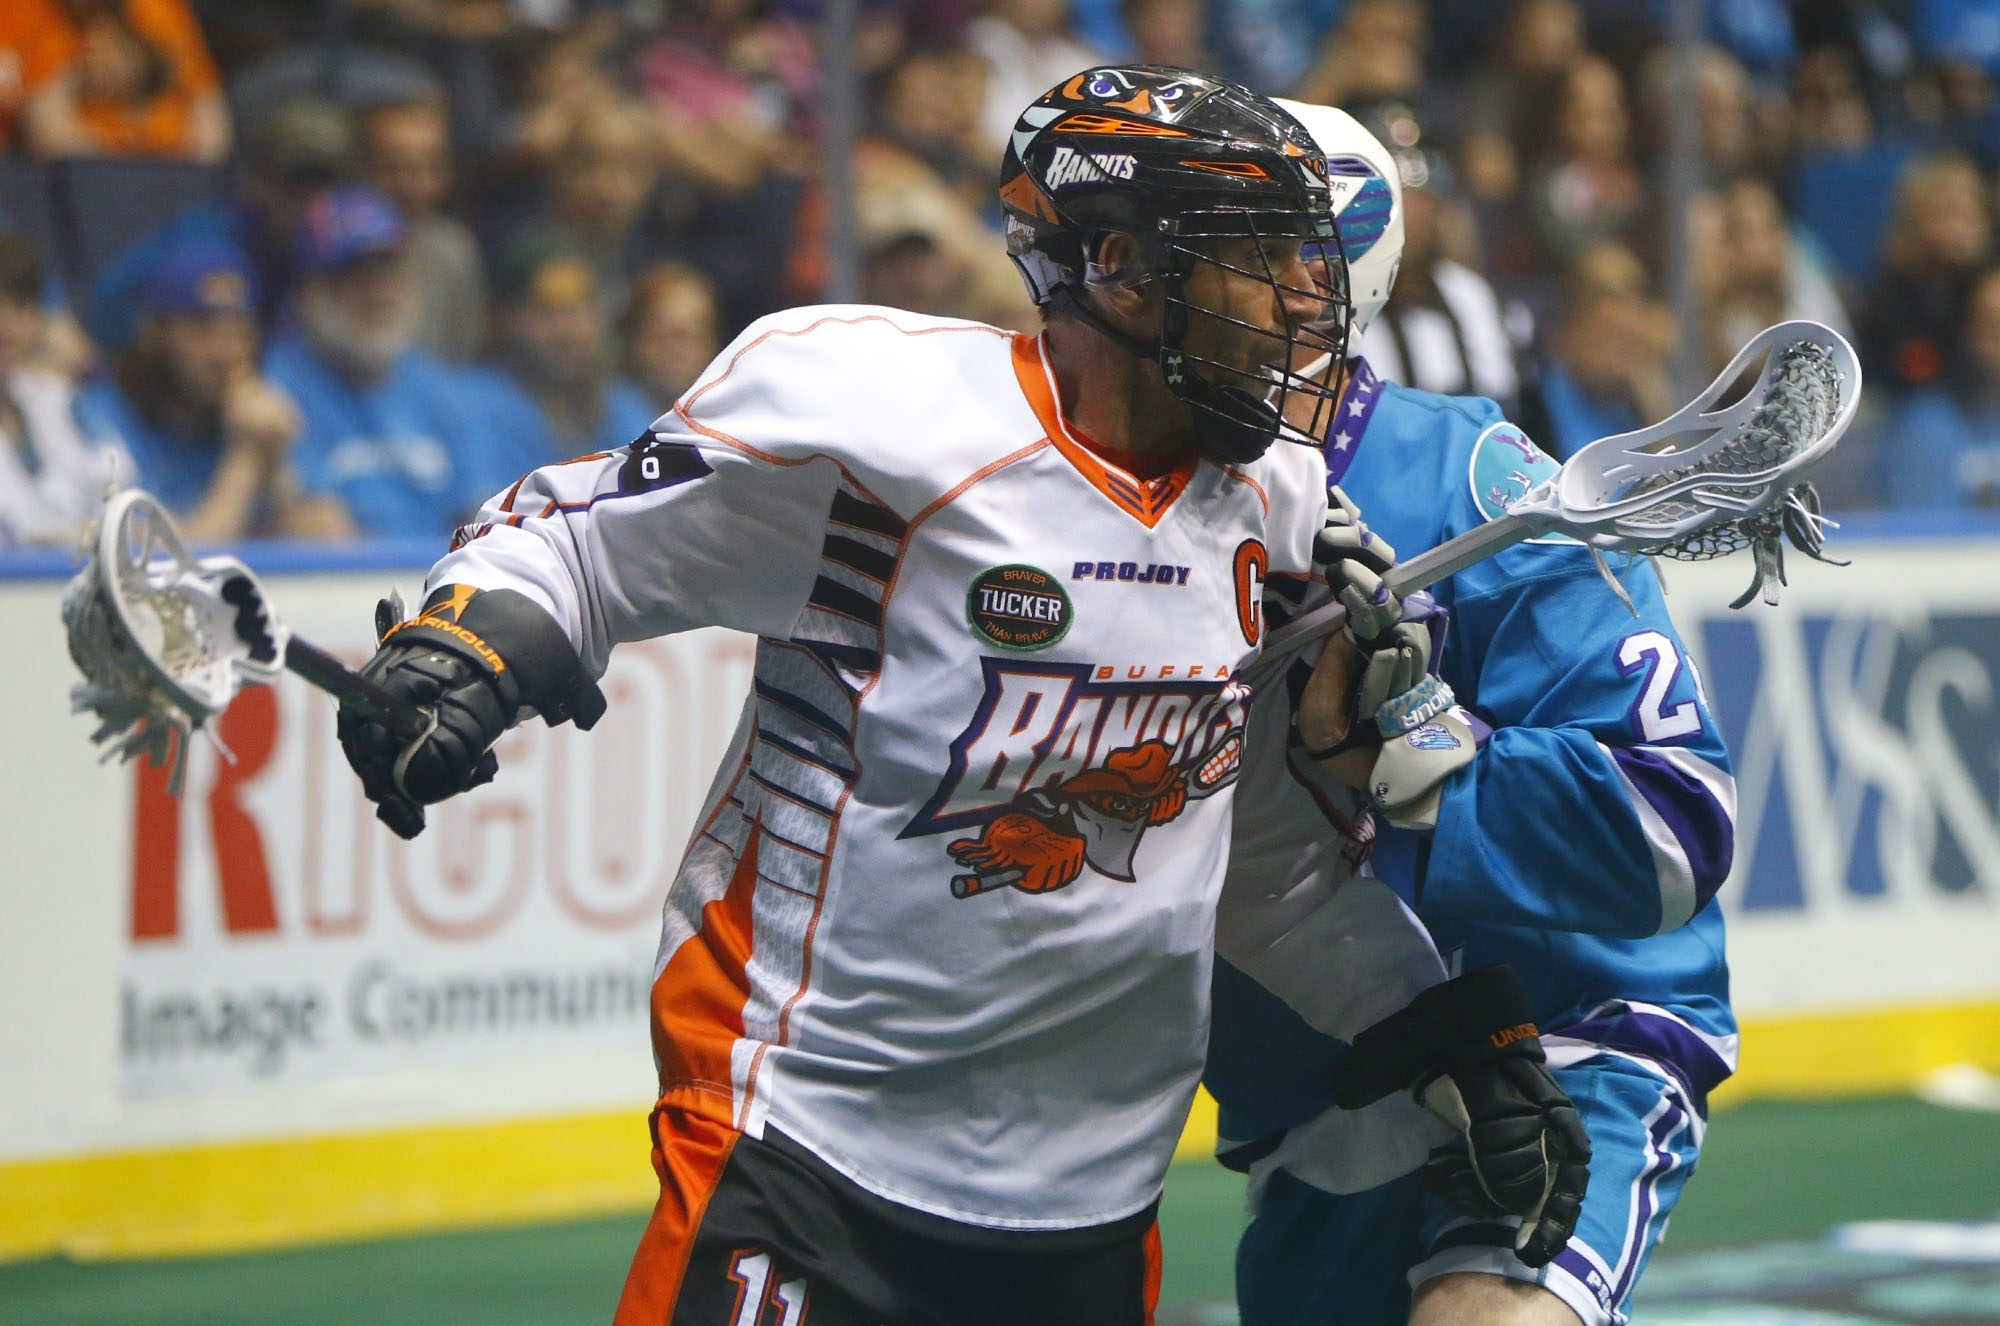 John Tavares, shown during his final season with the Buffalo Bandits, had his epic career begin in Detroit before becoming on of Buffalo's all-time great sports performers.